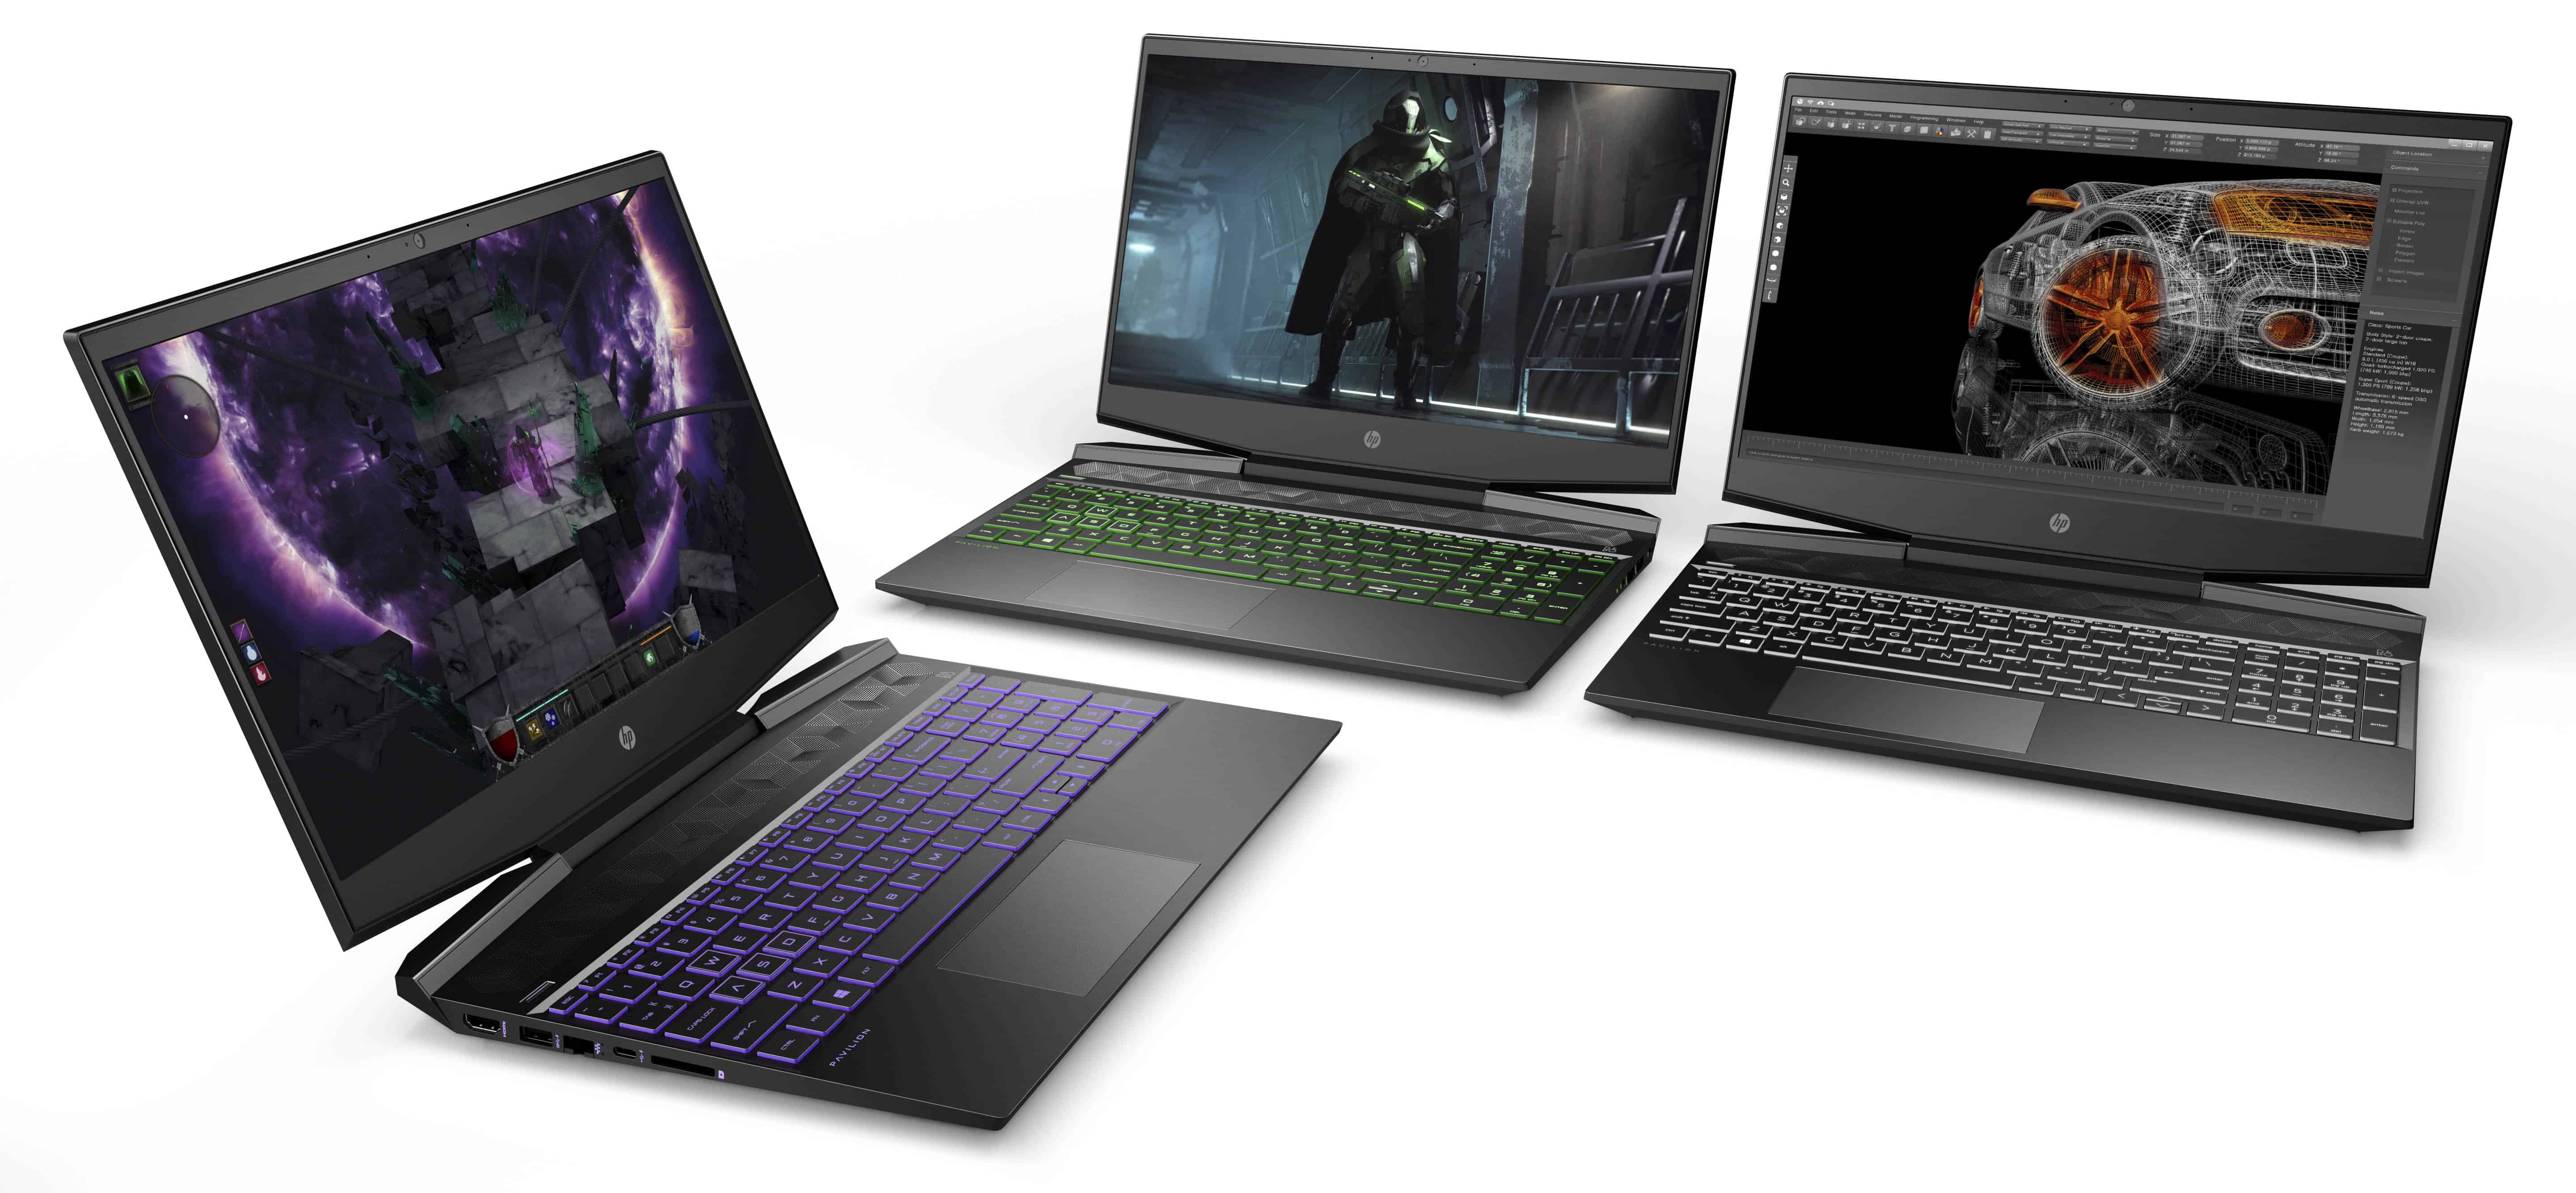 Omen by HP and HP Pavilion updated with state-of-the-art specs